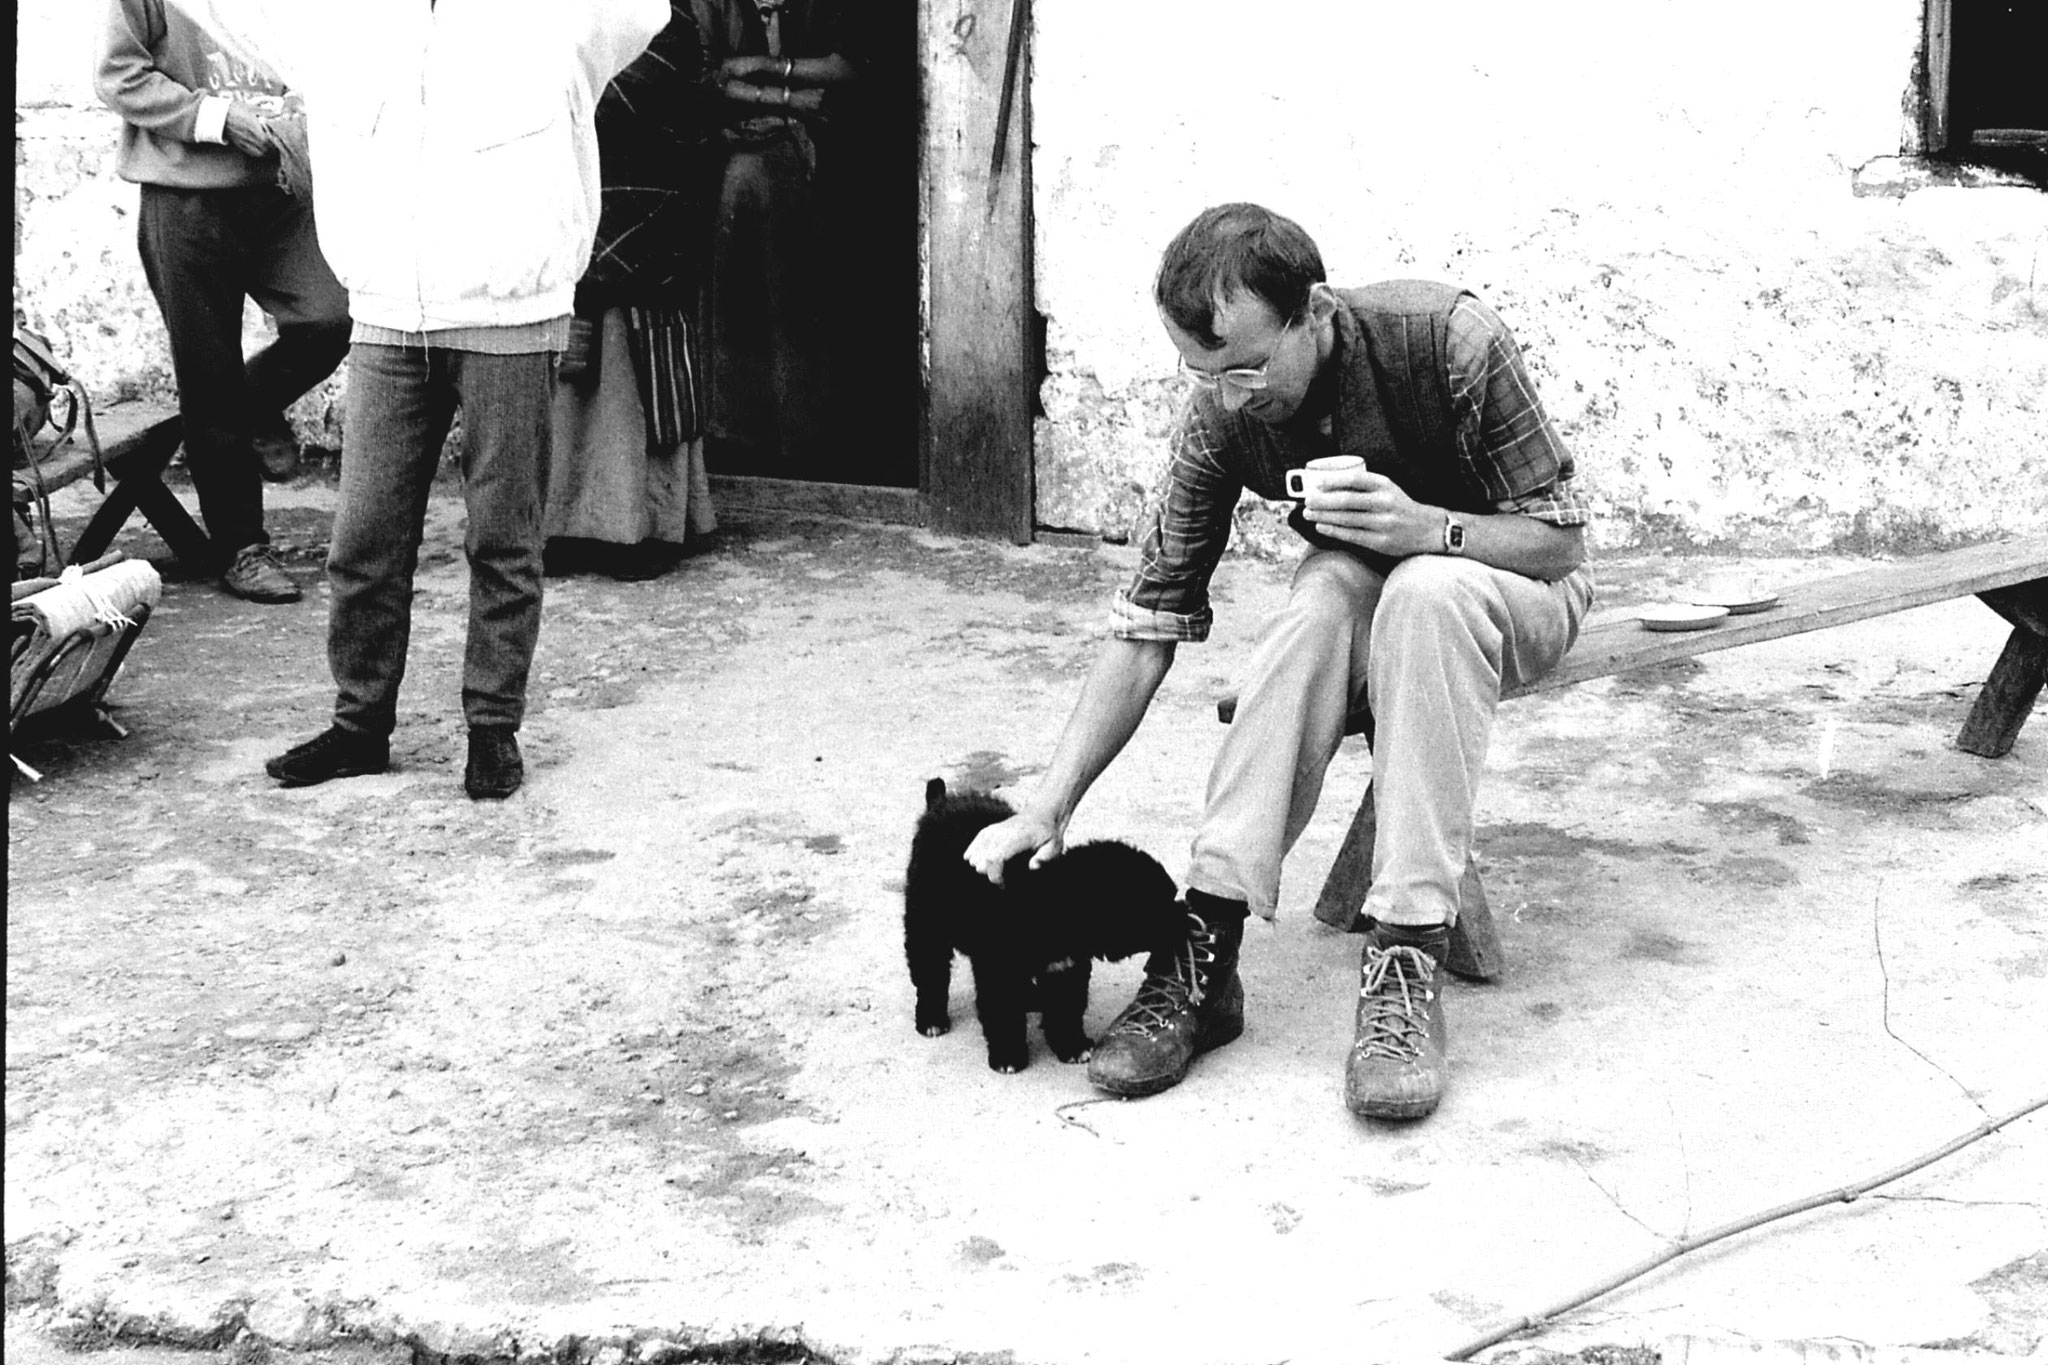 5/5/1990: 12: Kal Pokhri R with 'fierce' Tibetan dog